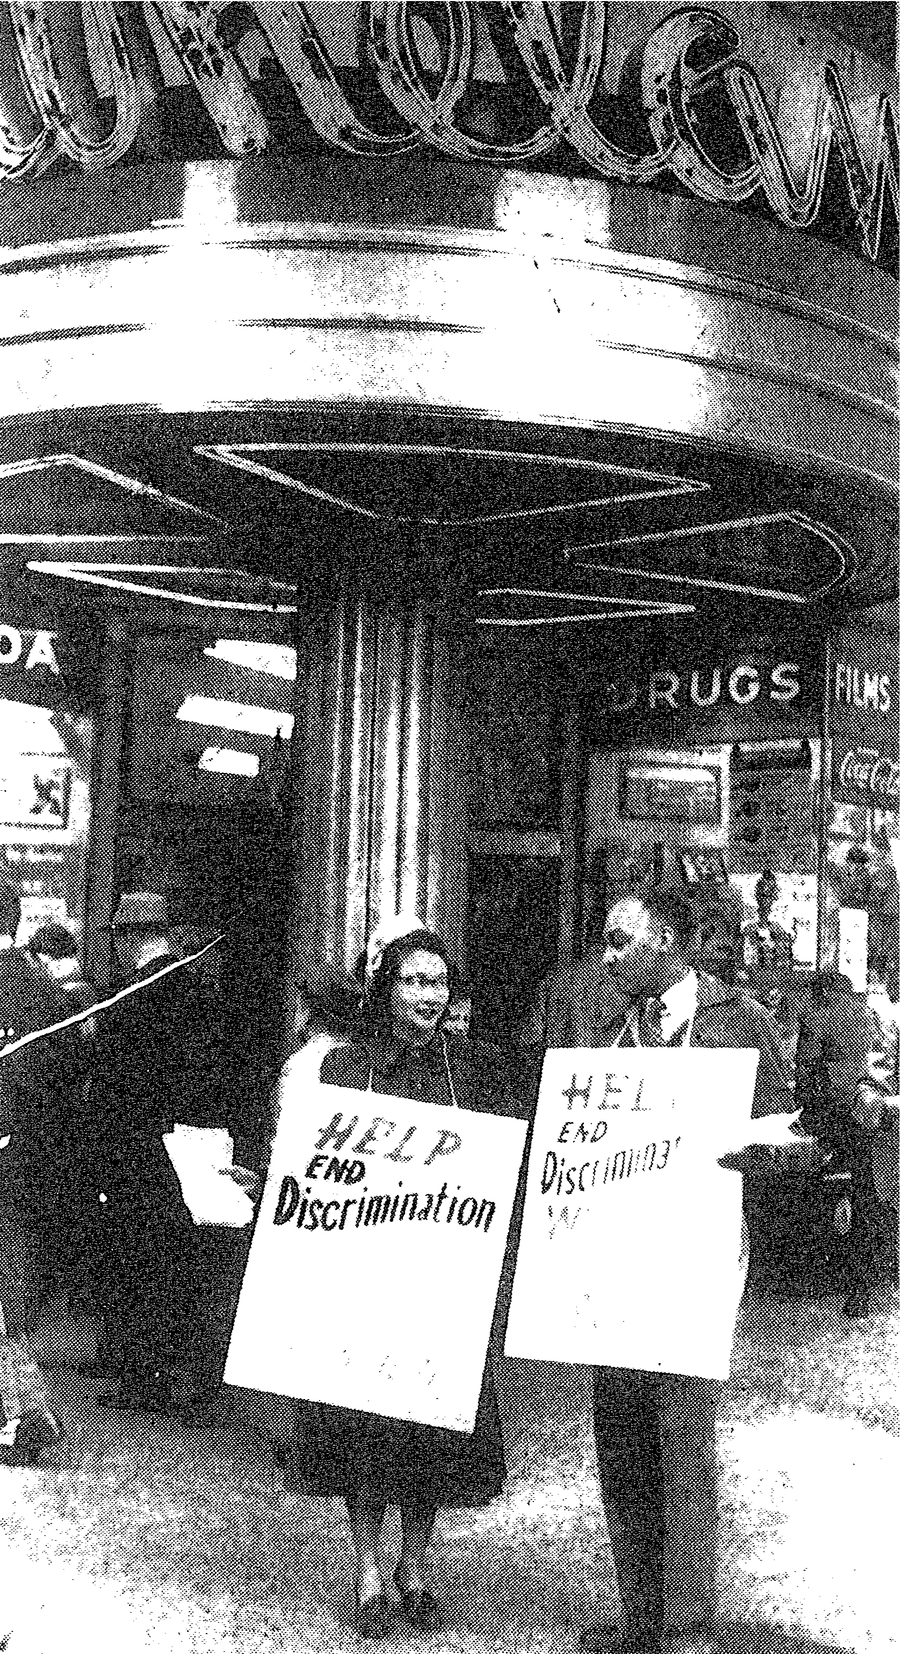 Ina Sugihara and Charles Crawford protest for civil rights